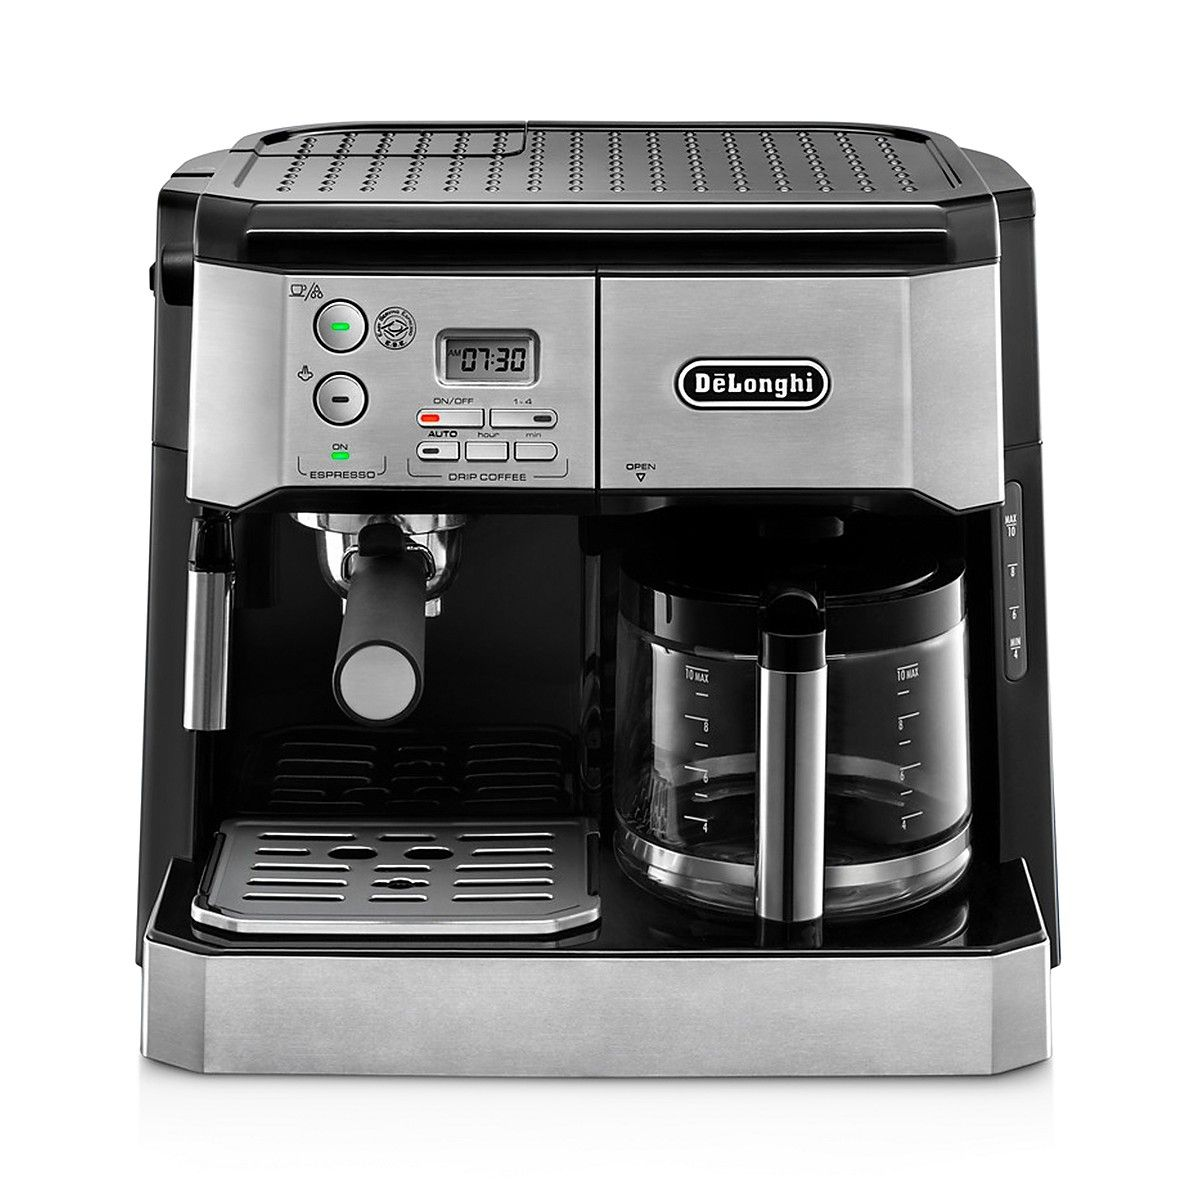 Combination Espresso & Drip Coffee Machine Coffee and